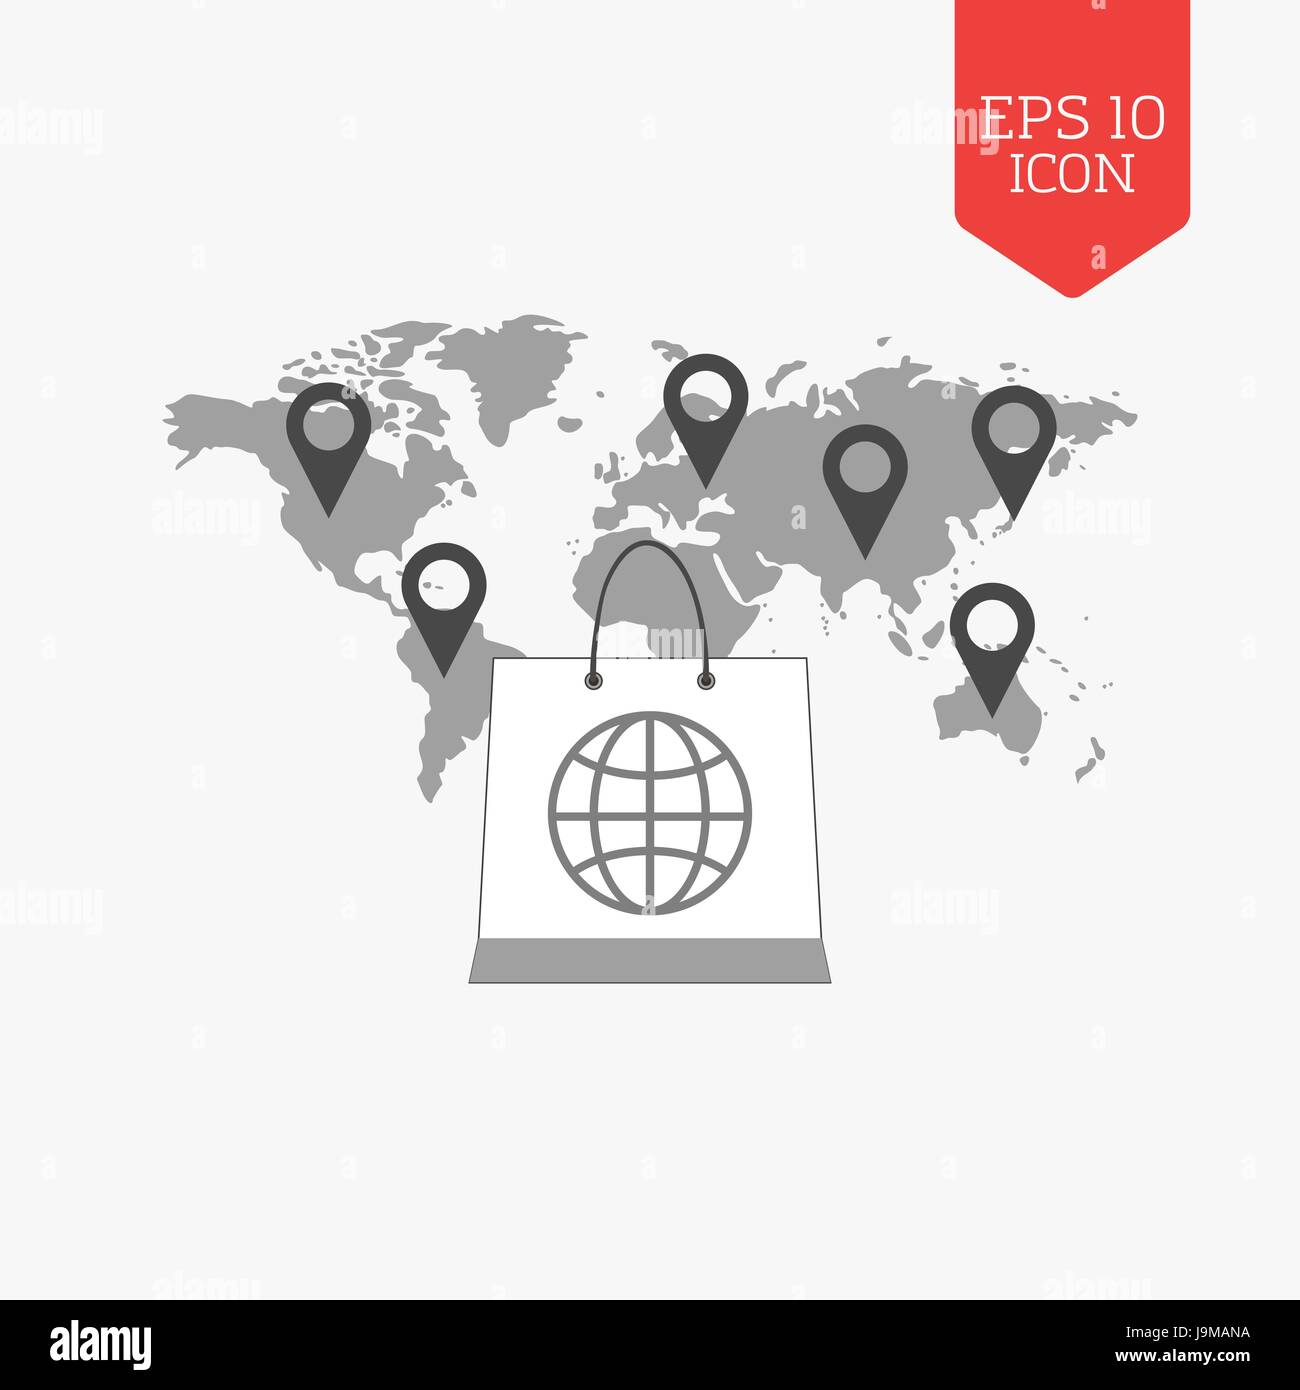 Shopping bag over world map with pointers international sale stock shopping bag over world map with pointers international sale concept flat design gray color symbol modern ui web navigation sign illustration ele gumiabroncs Gallery